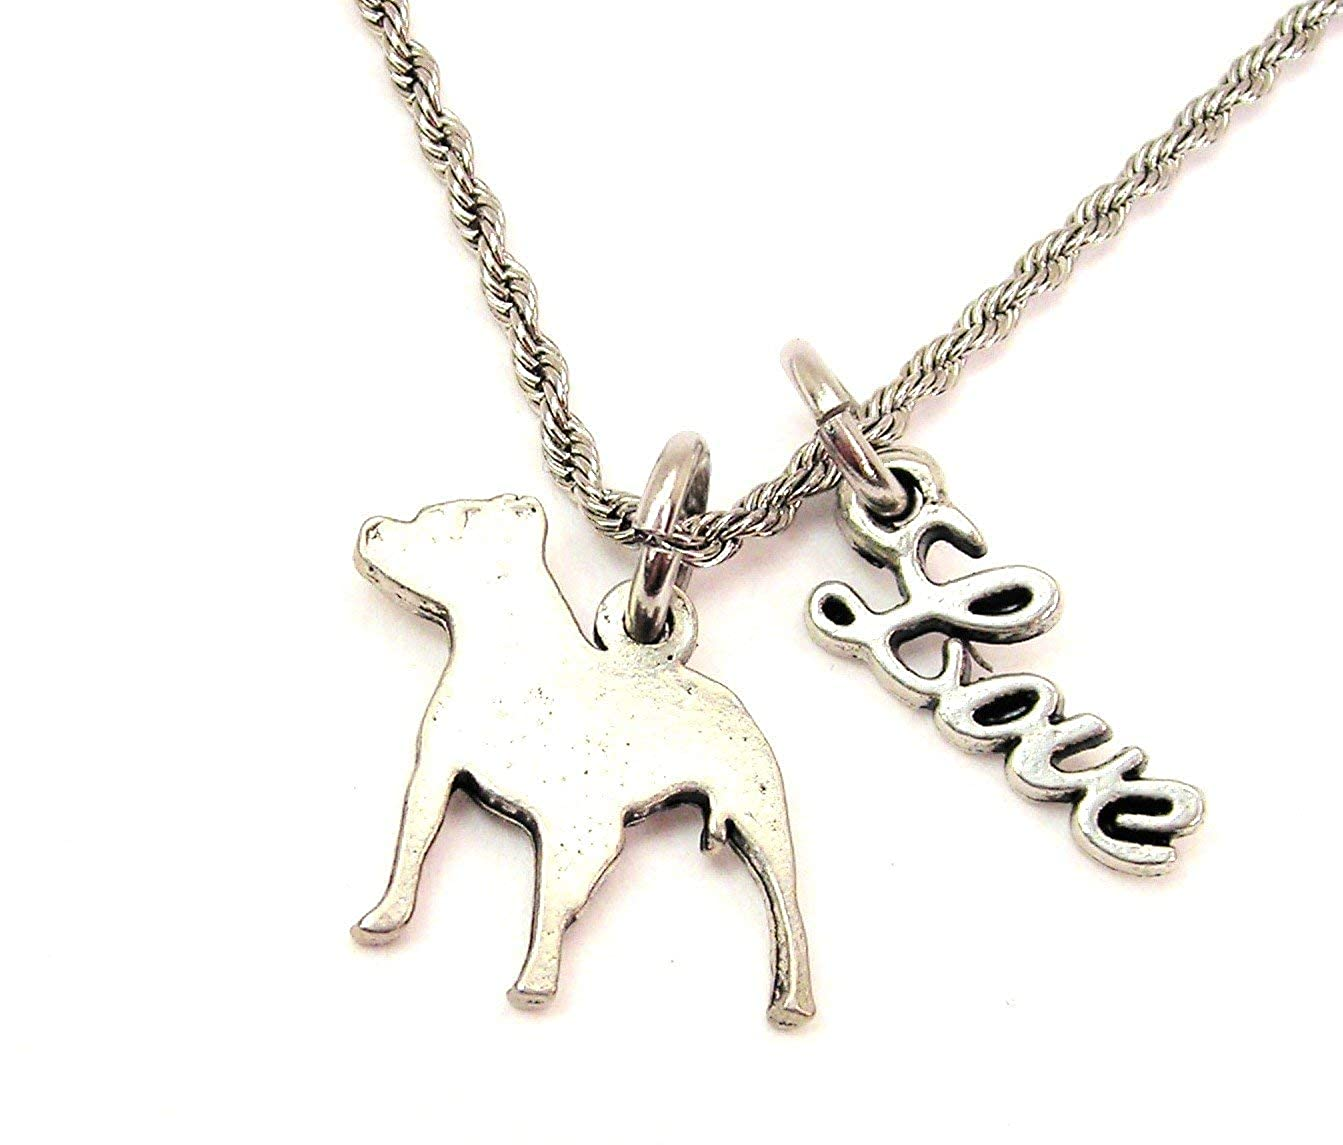 ChubbyChicoCharms Pit Bull Silhouette Stainless Steel Rope Chain Necklace with White Crystal Accent